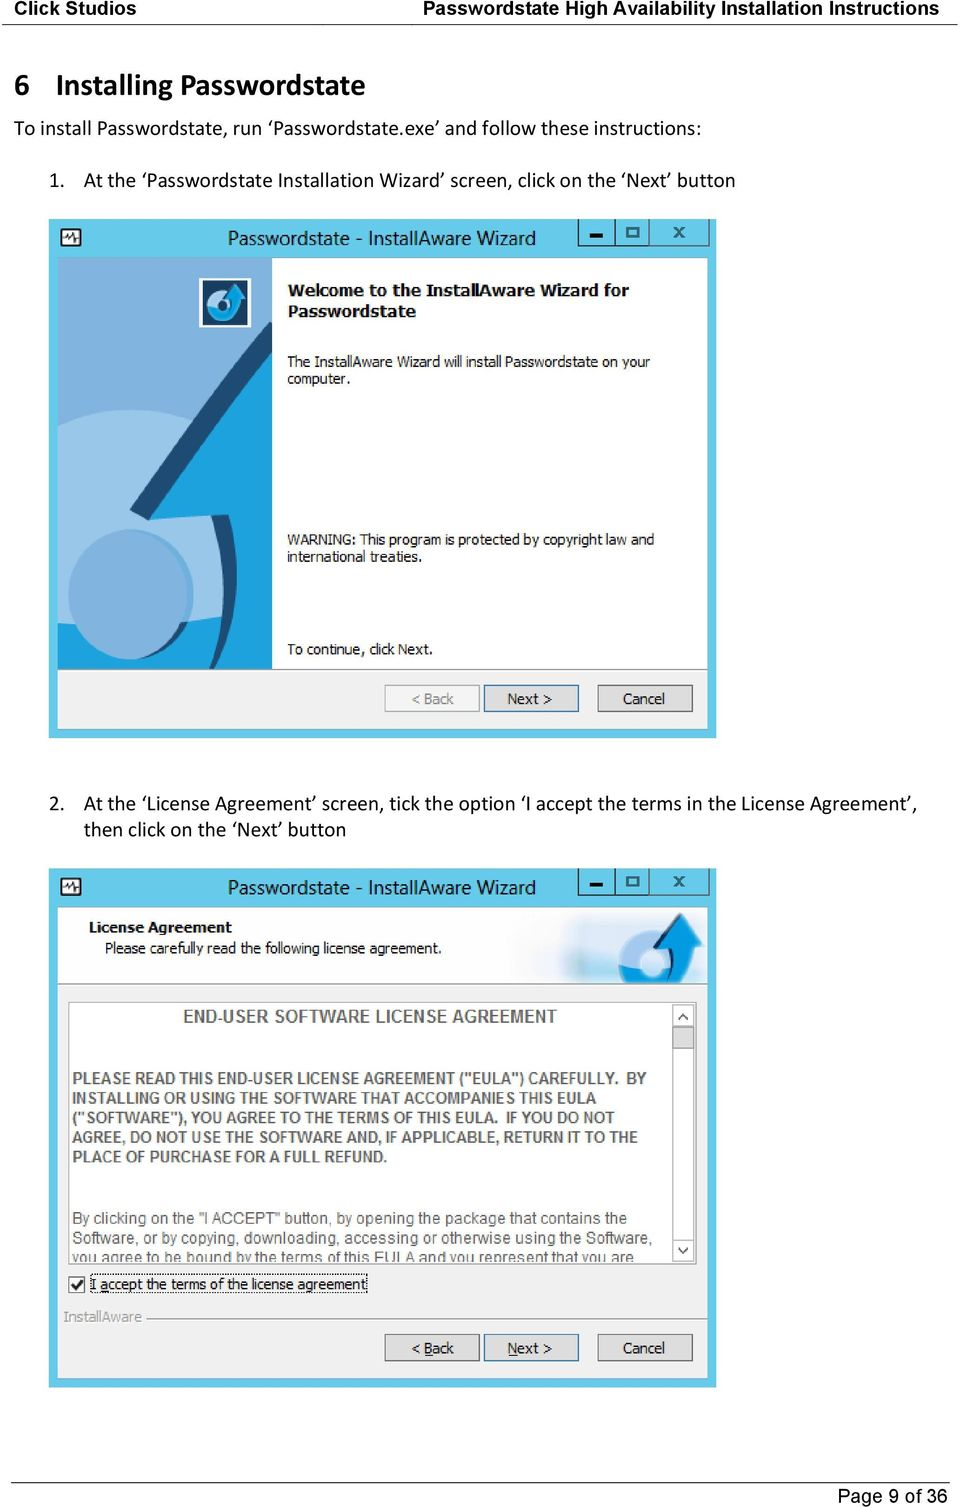 At the Passwordstate Installation Wizard screen, click on the Next button 2.